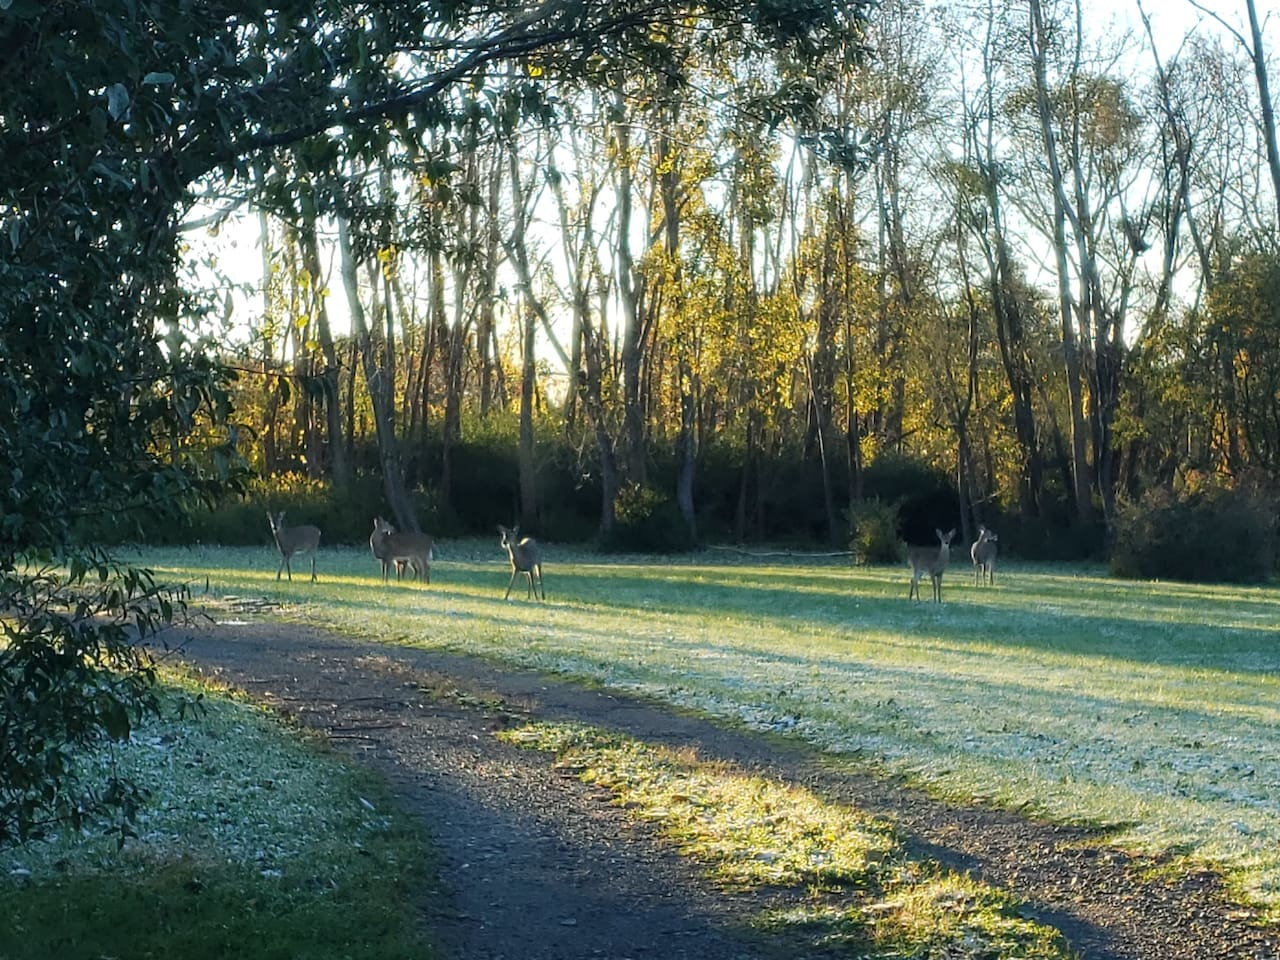 Early morning deer grazing as you leave the property